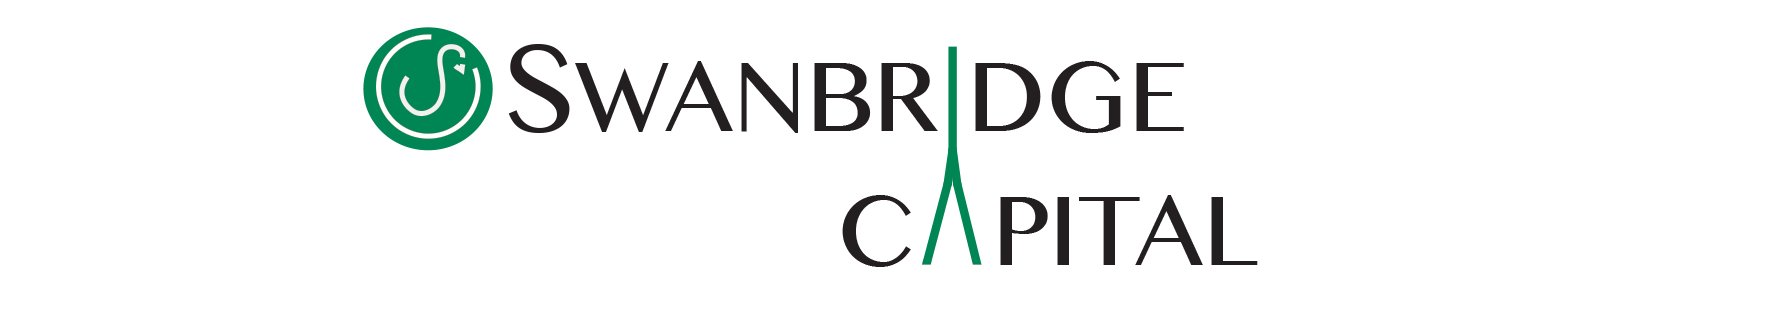 Swanbridge Capital